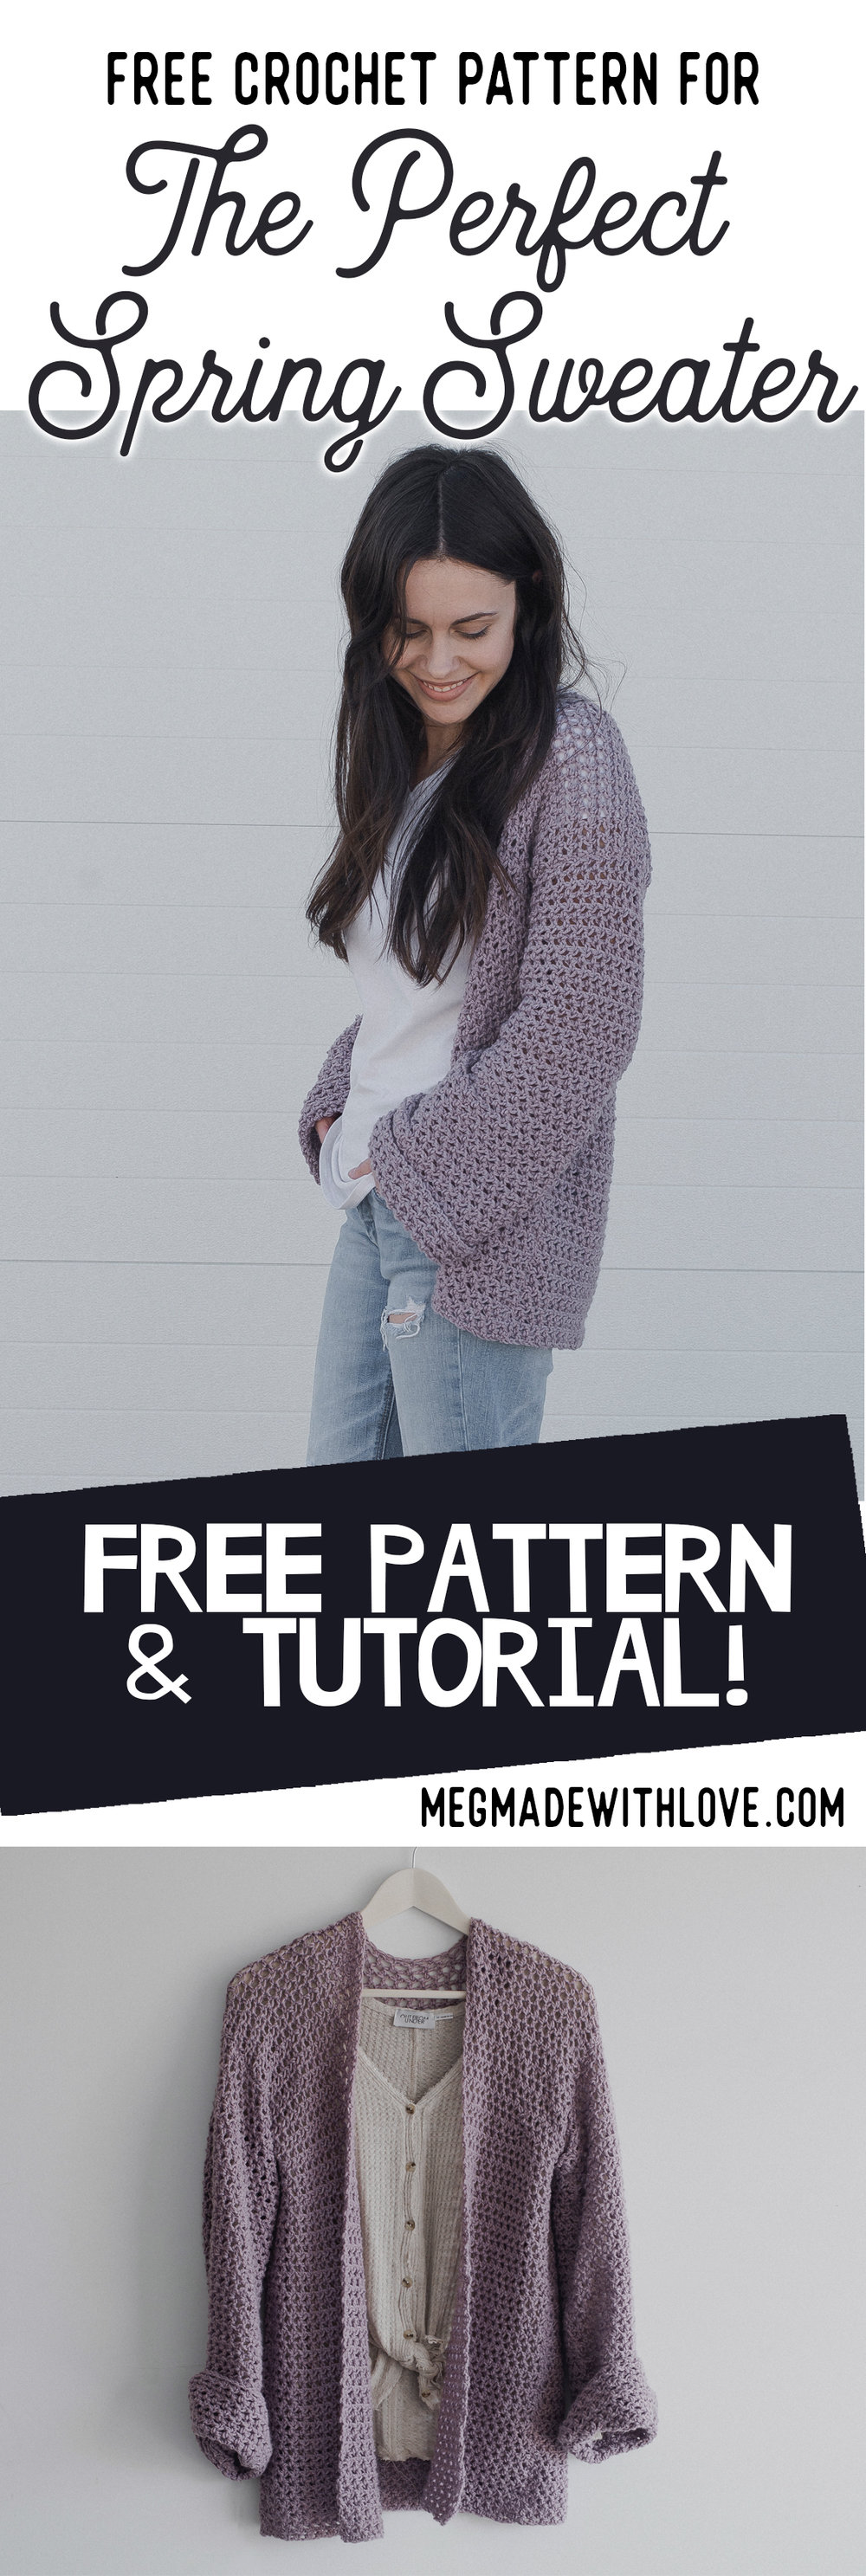 Free Crochet Pattern for The Perfect Spring Sweater - Oversized Cardigan Megmade with Love